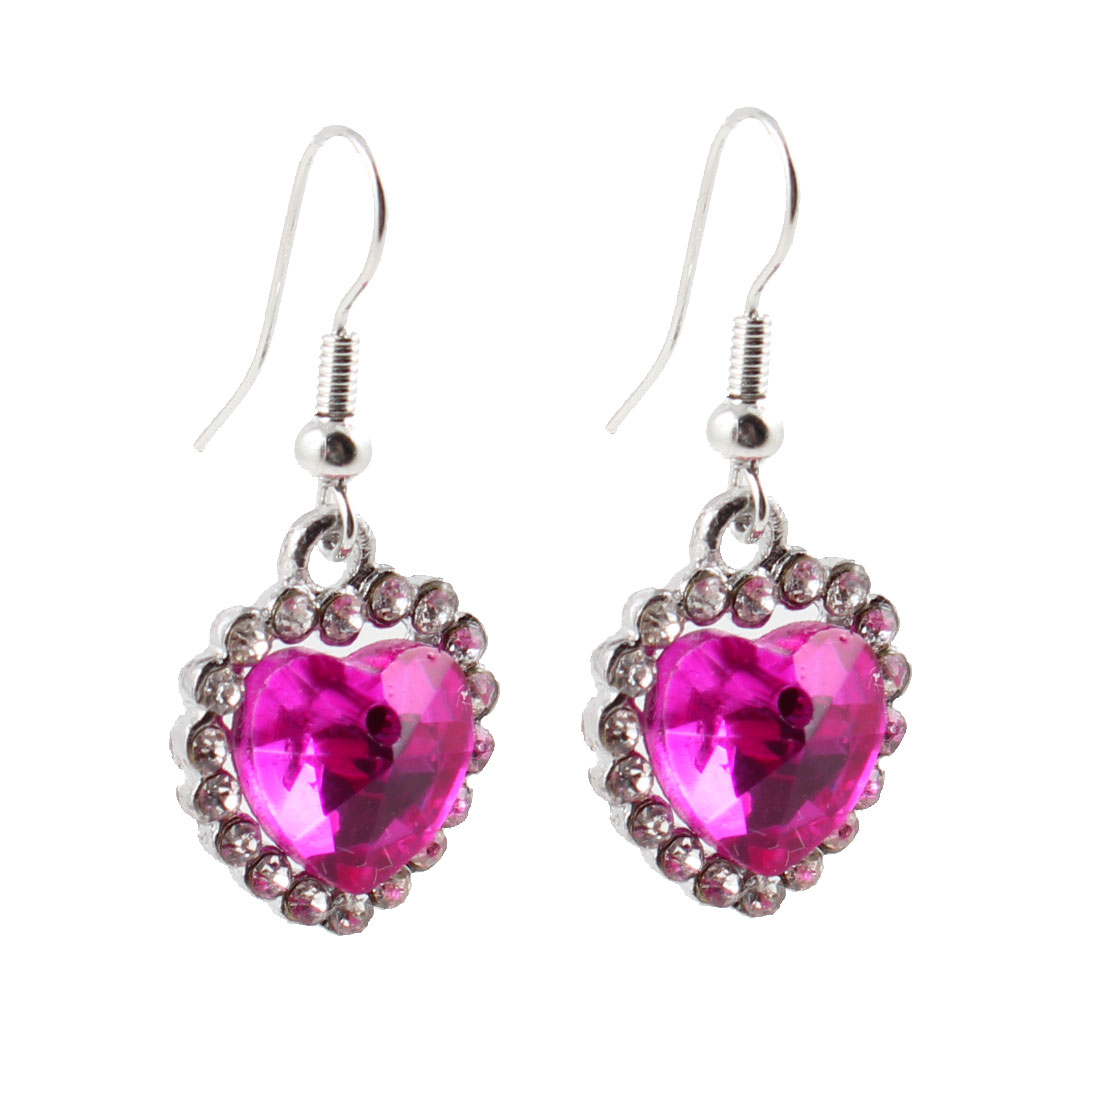 Rhinestones Faceted Bead Heart Pendant Fishhook Earrings Fuchsia Silver Tone